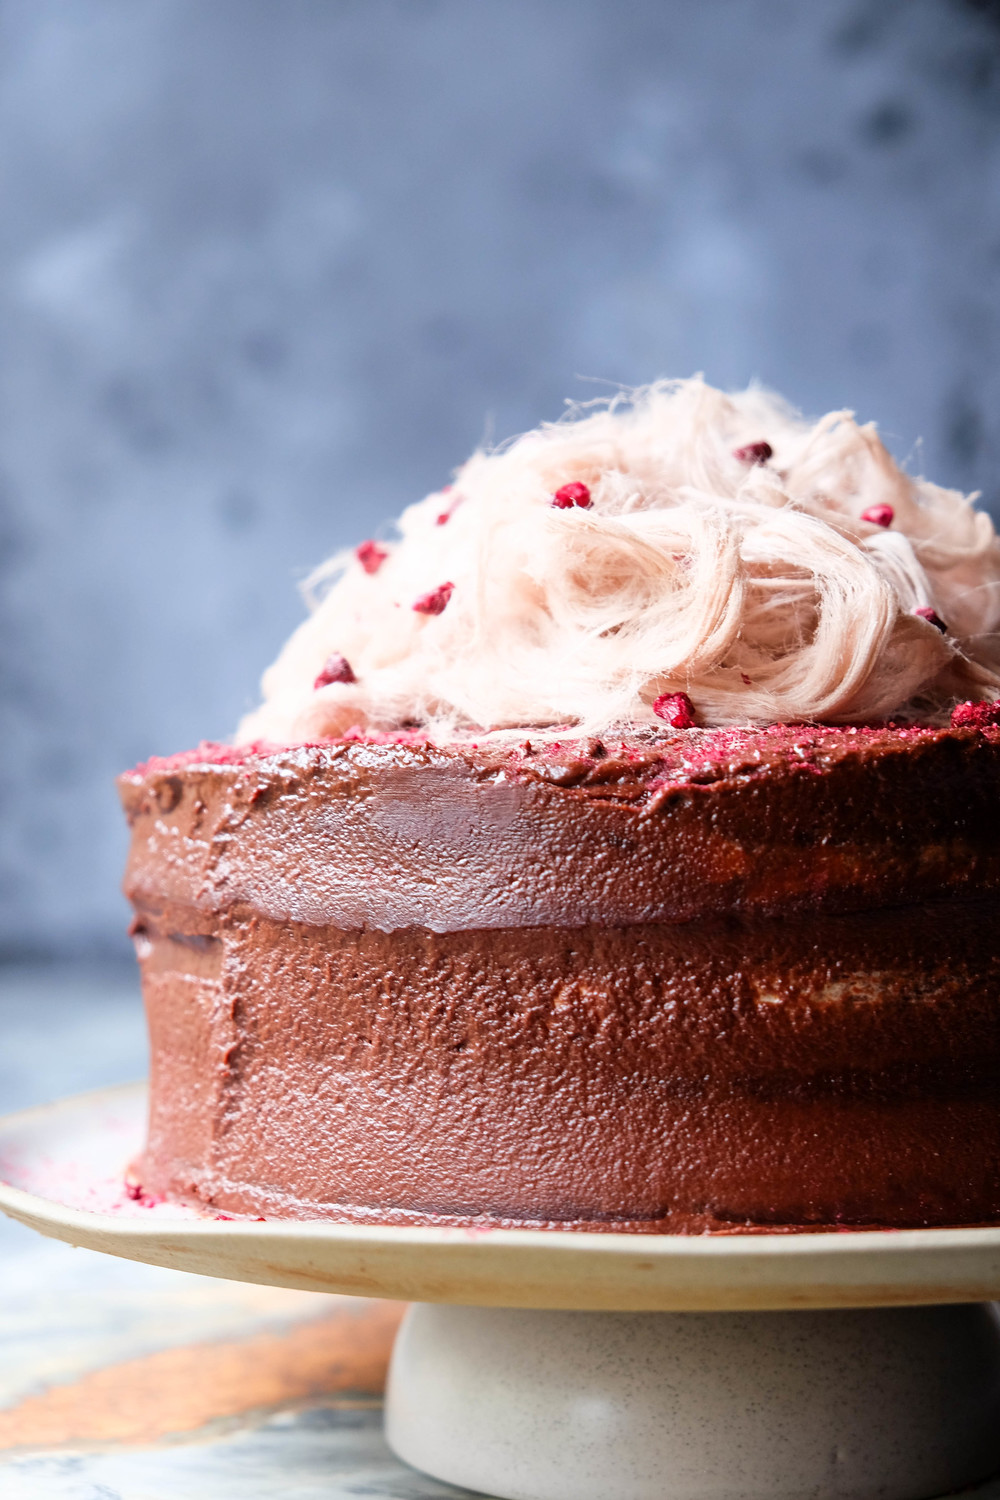 Dark chocolate pomegranate fudge cake